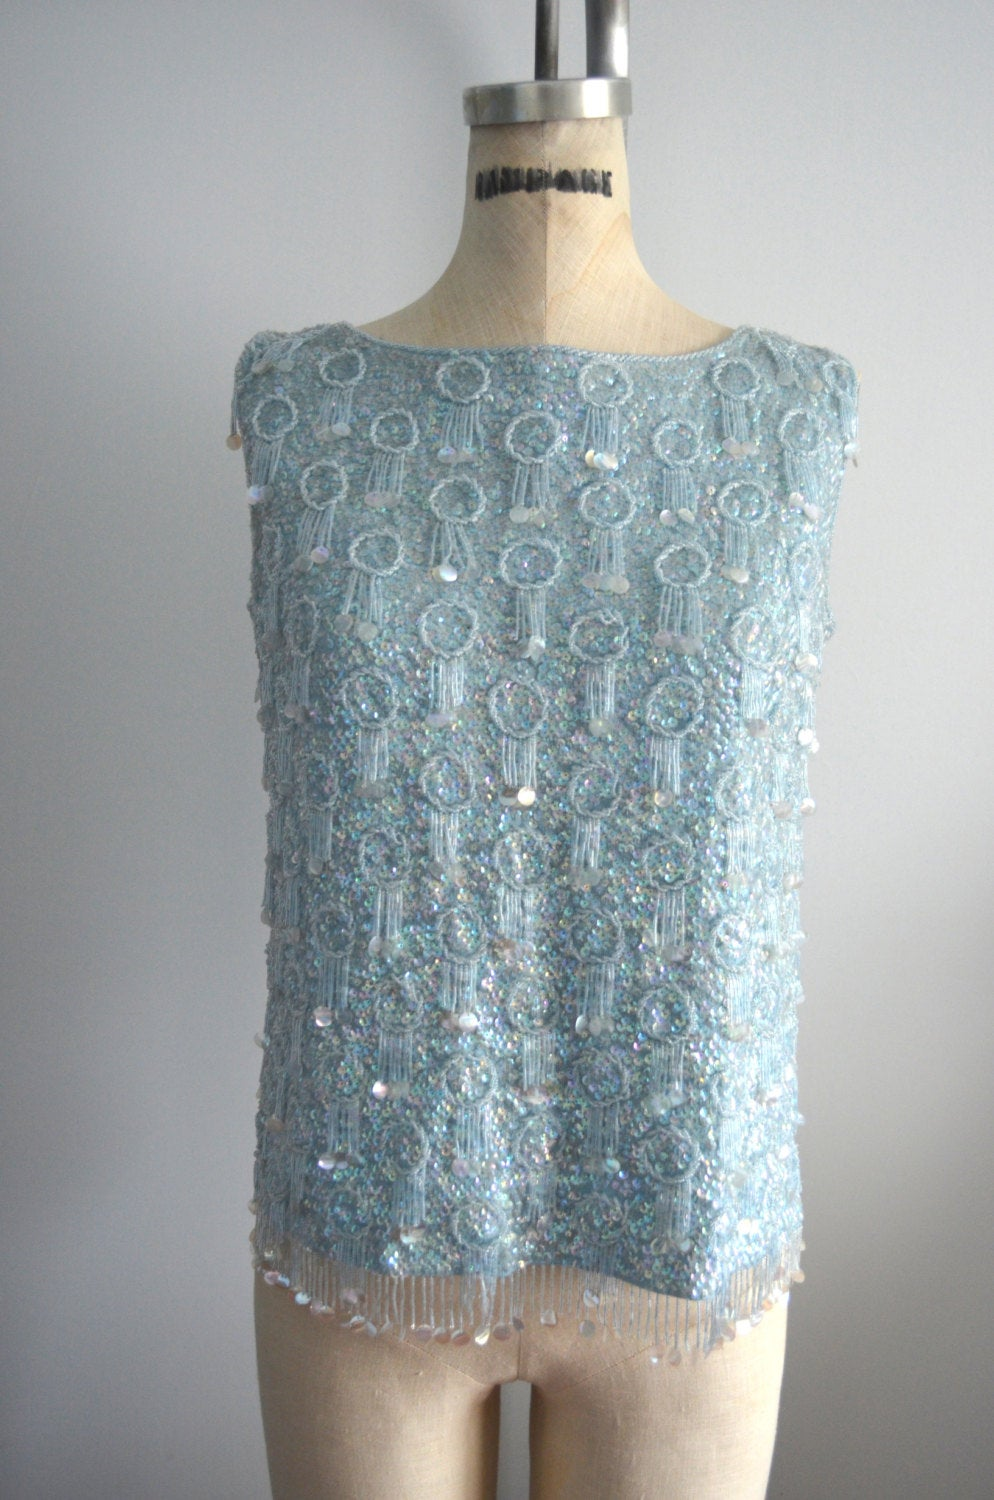 Pastel Blue Recalia Womens Blue Beaded Sequined Sweater Vest Top Blouse L